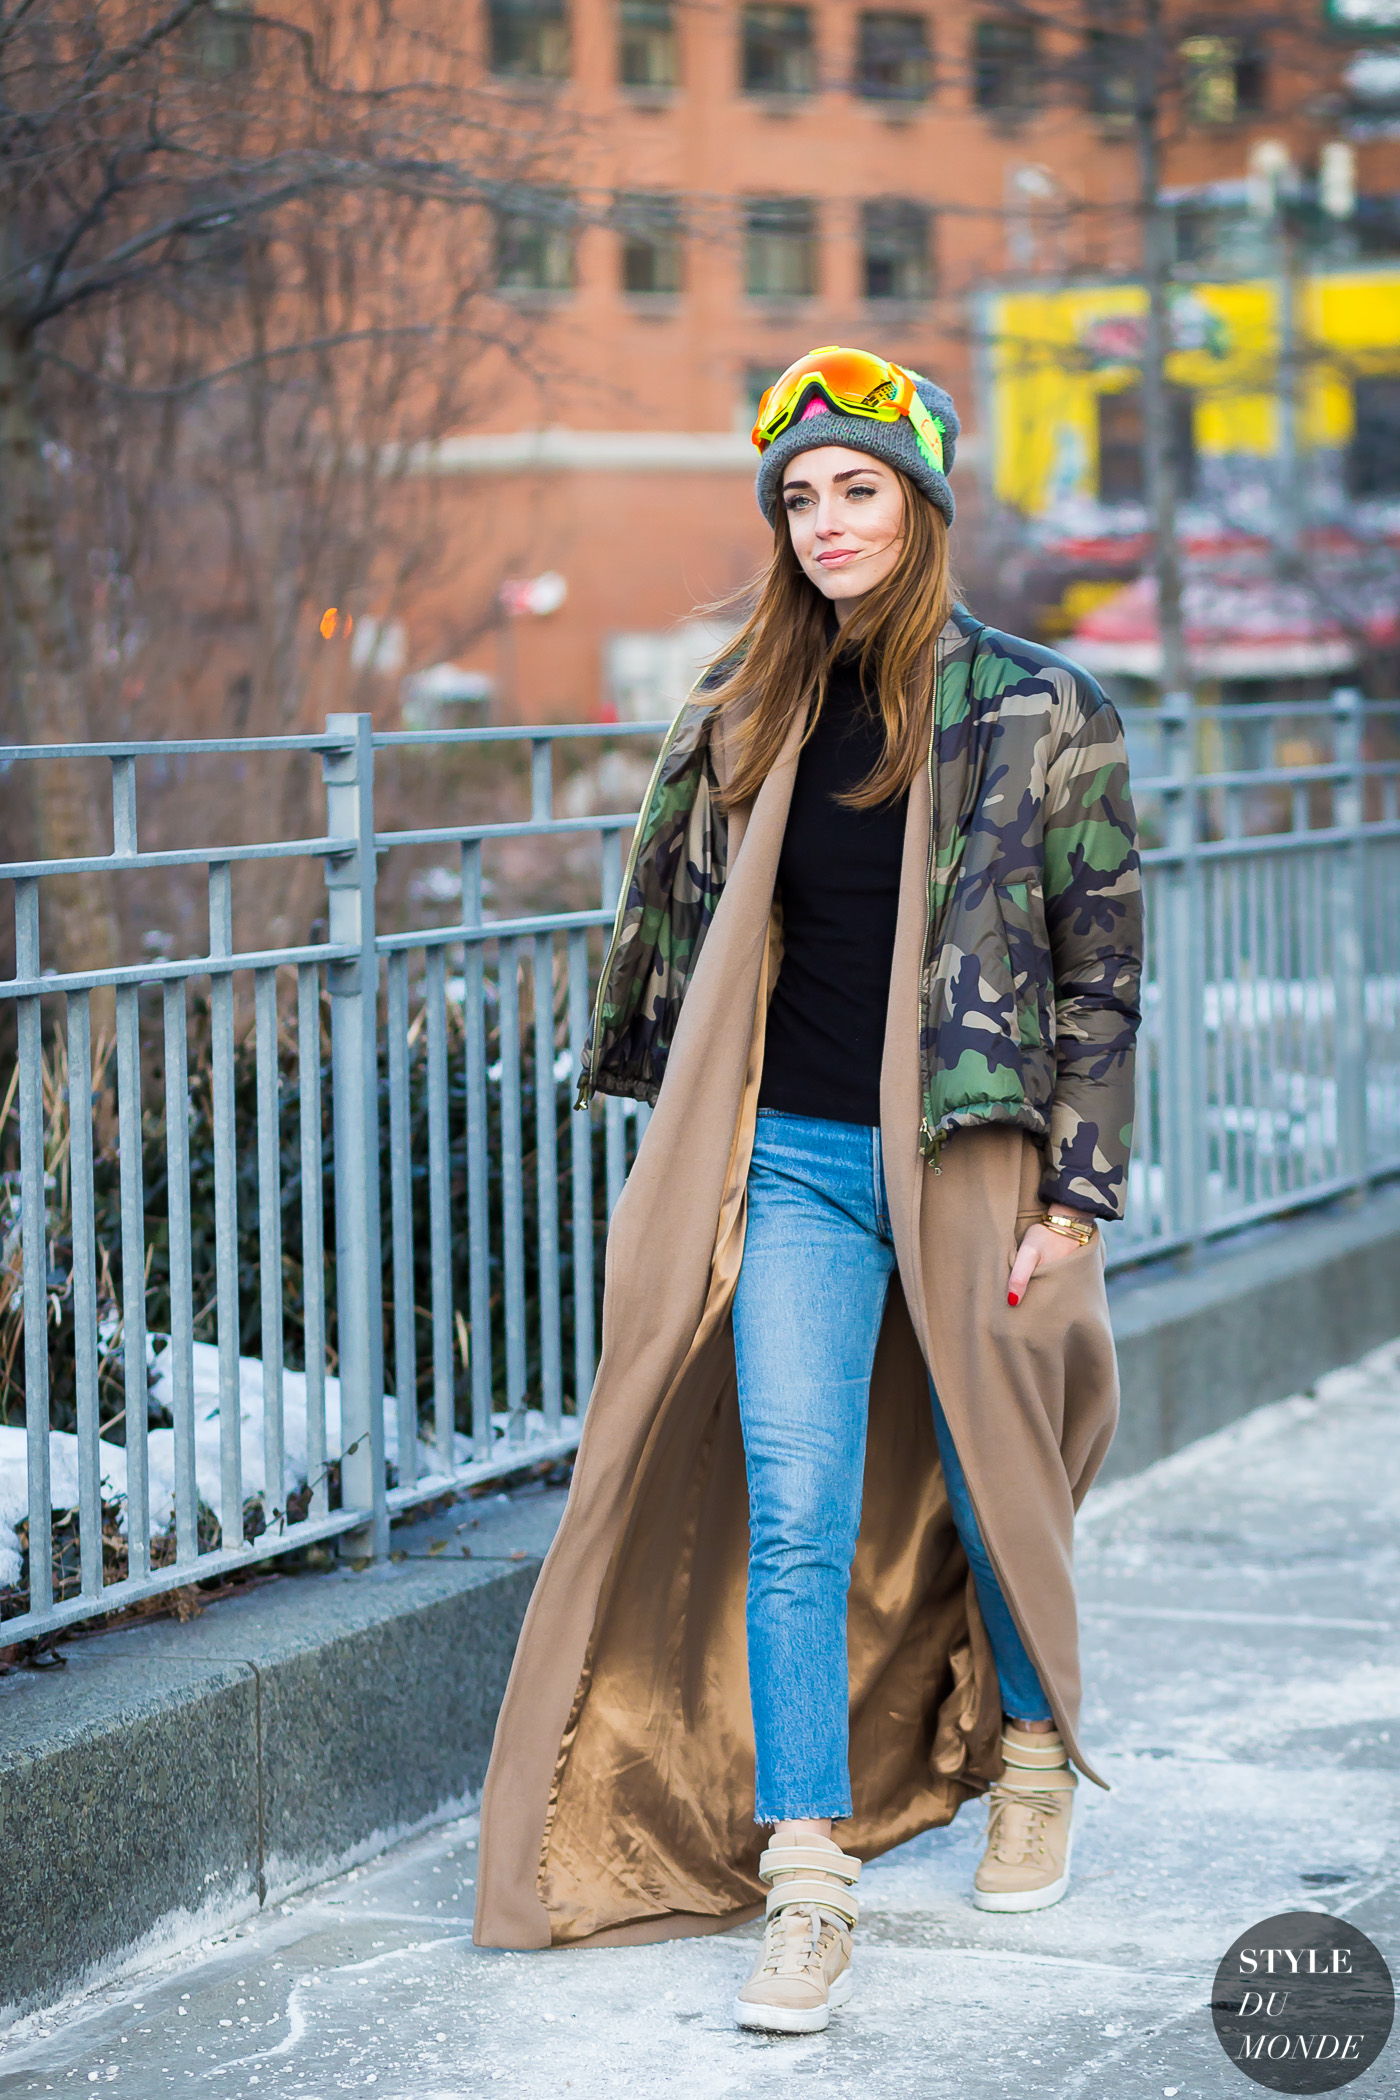 Chiara Ferragni The Blonde Salad by STYLEDUMONDE Street Style Fashion Photography